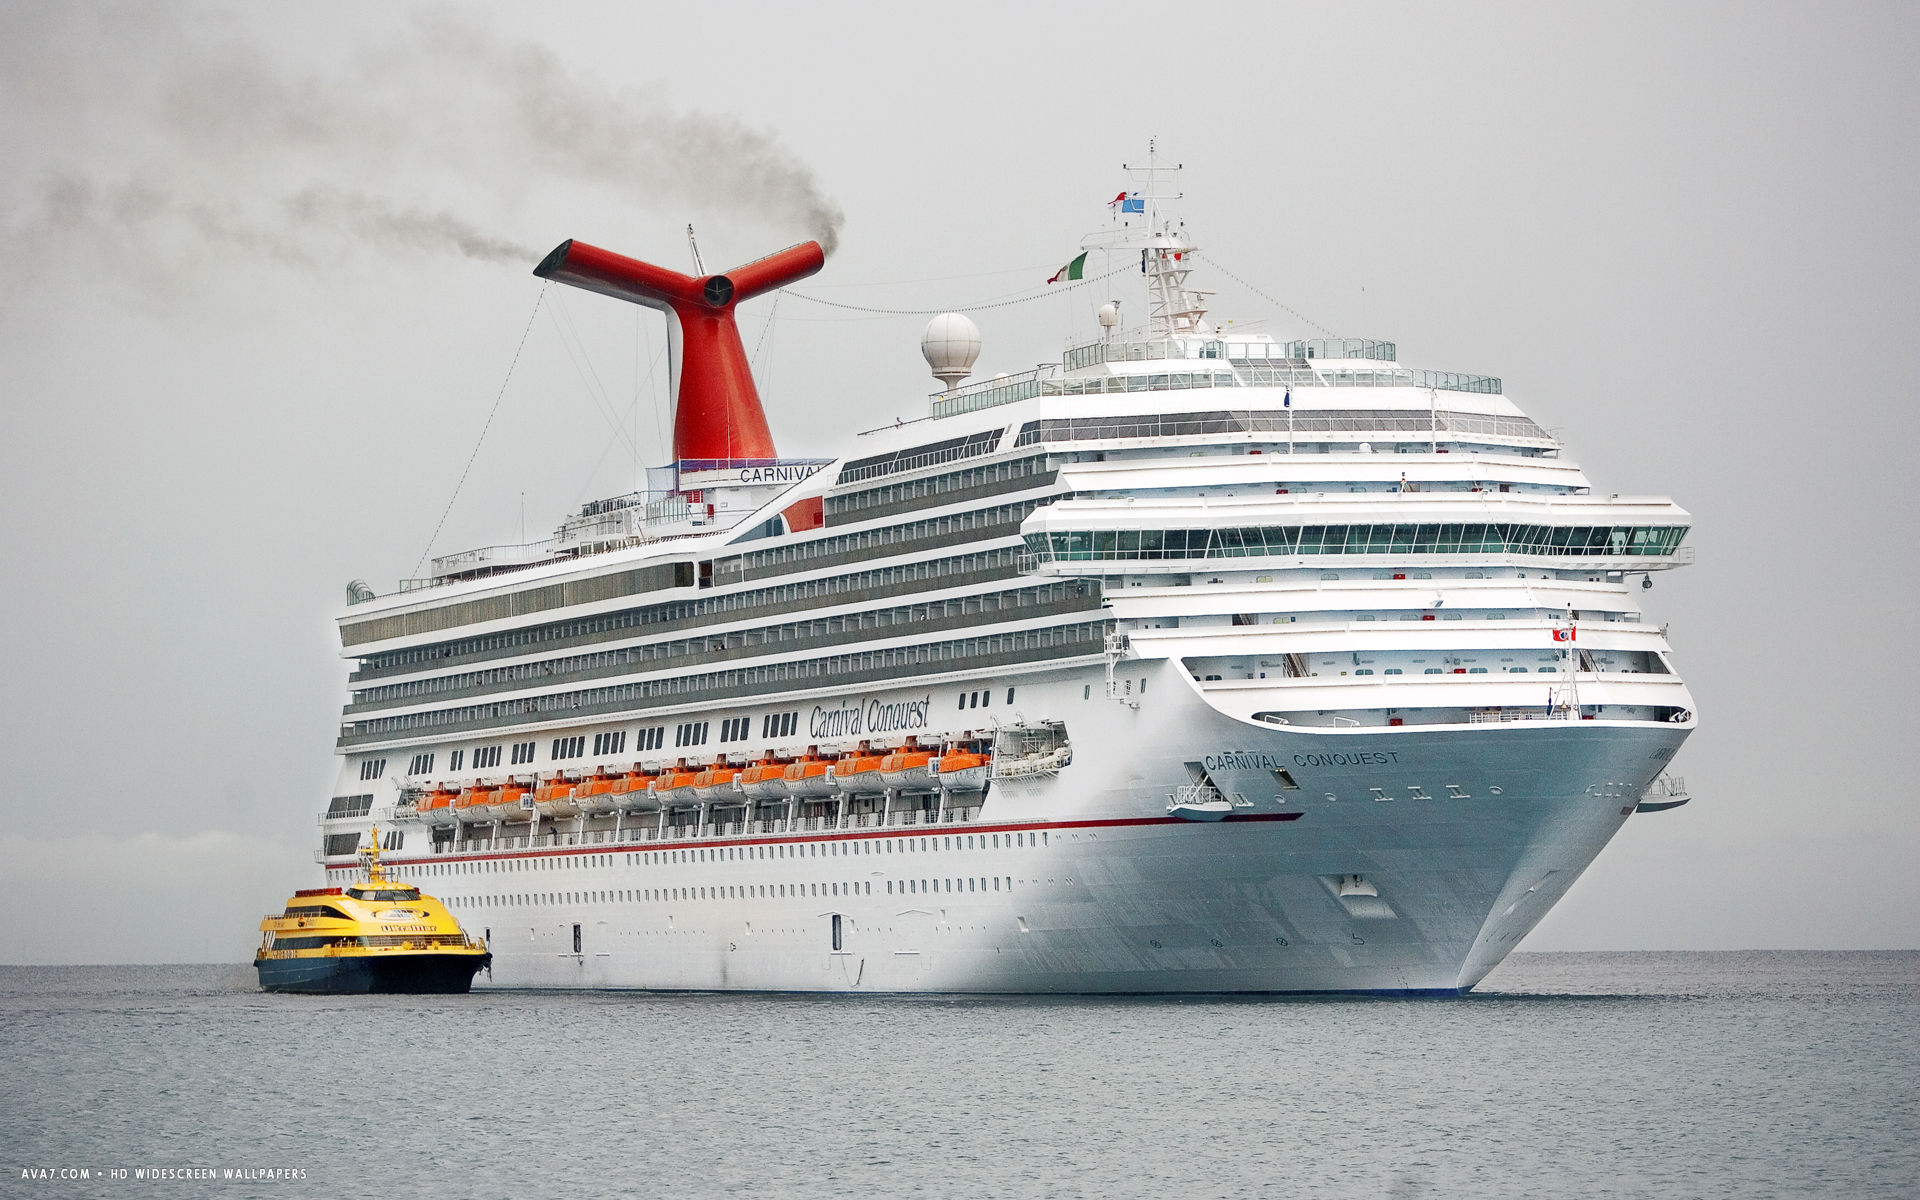 carnival conquest cruise ship hd widescreen wallpaper cruise ships 1920x1200